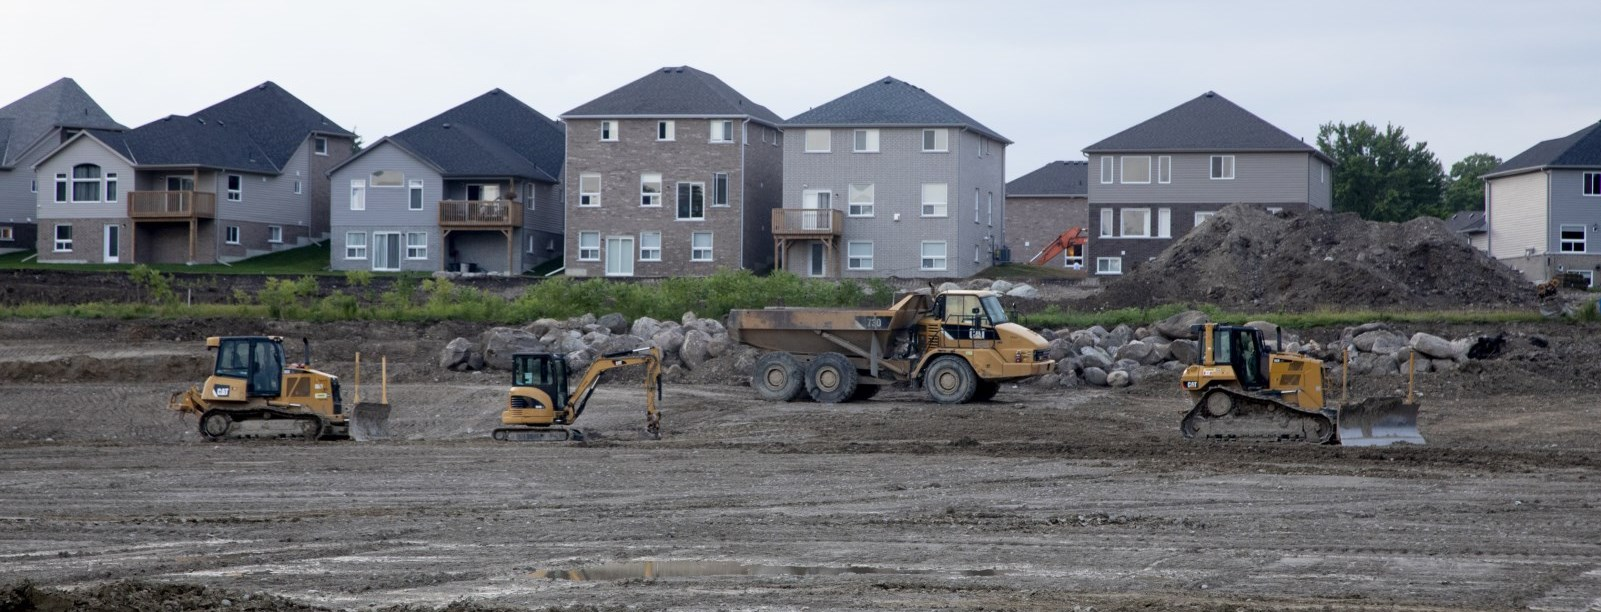 subdivision construction with construction vehicles and new houses